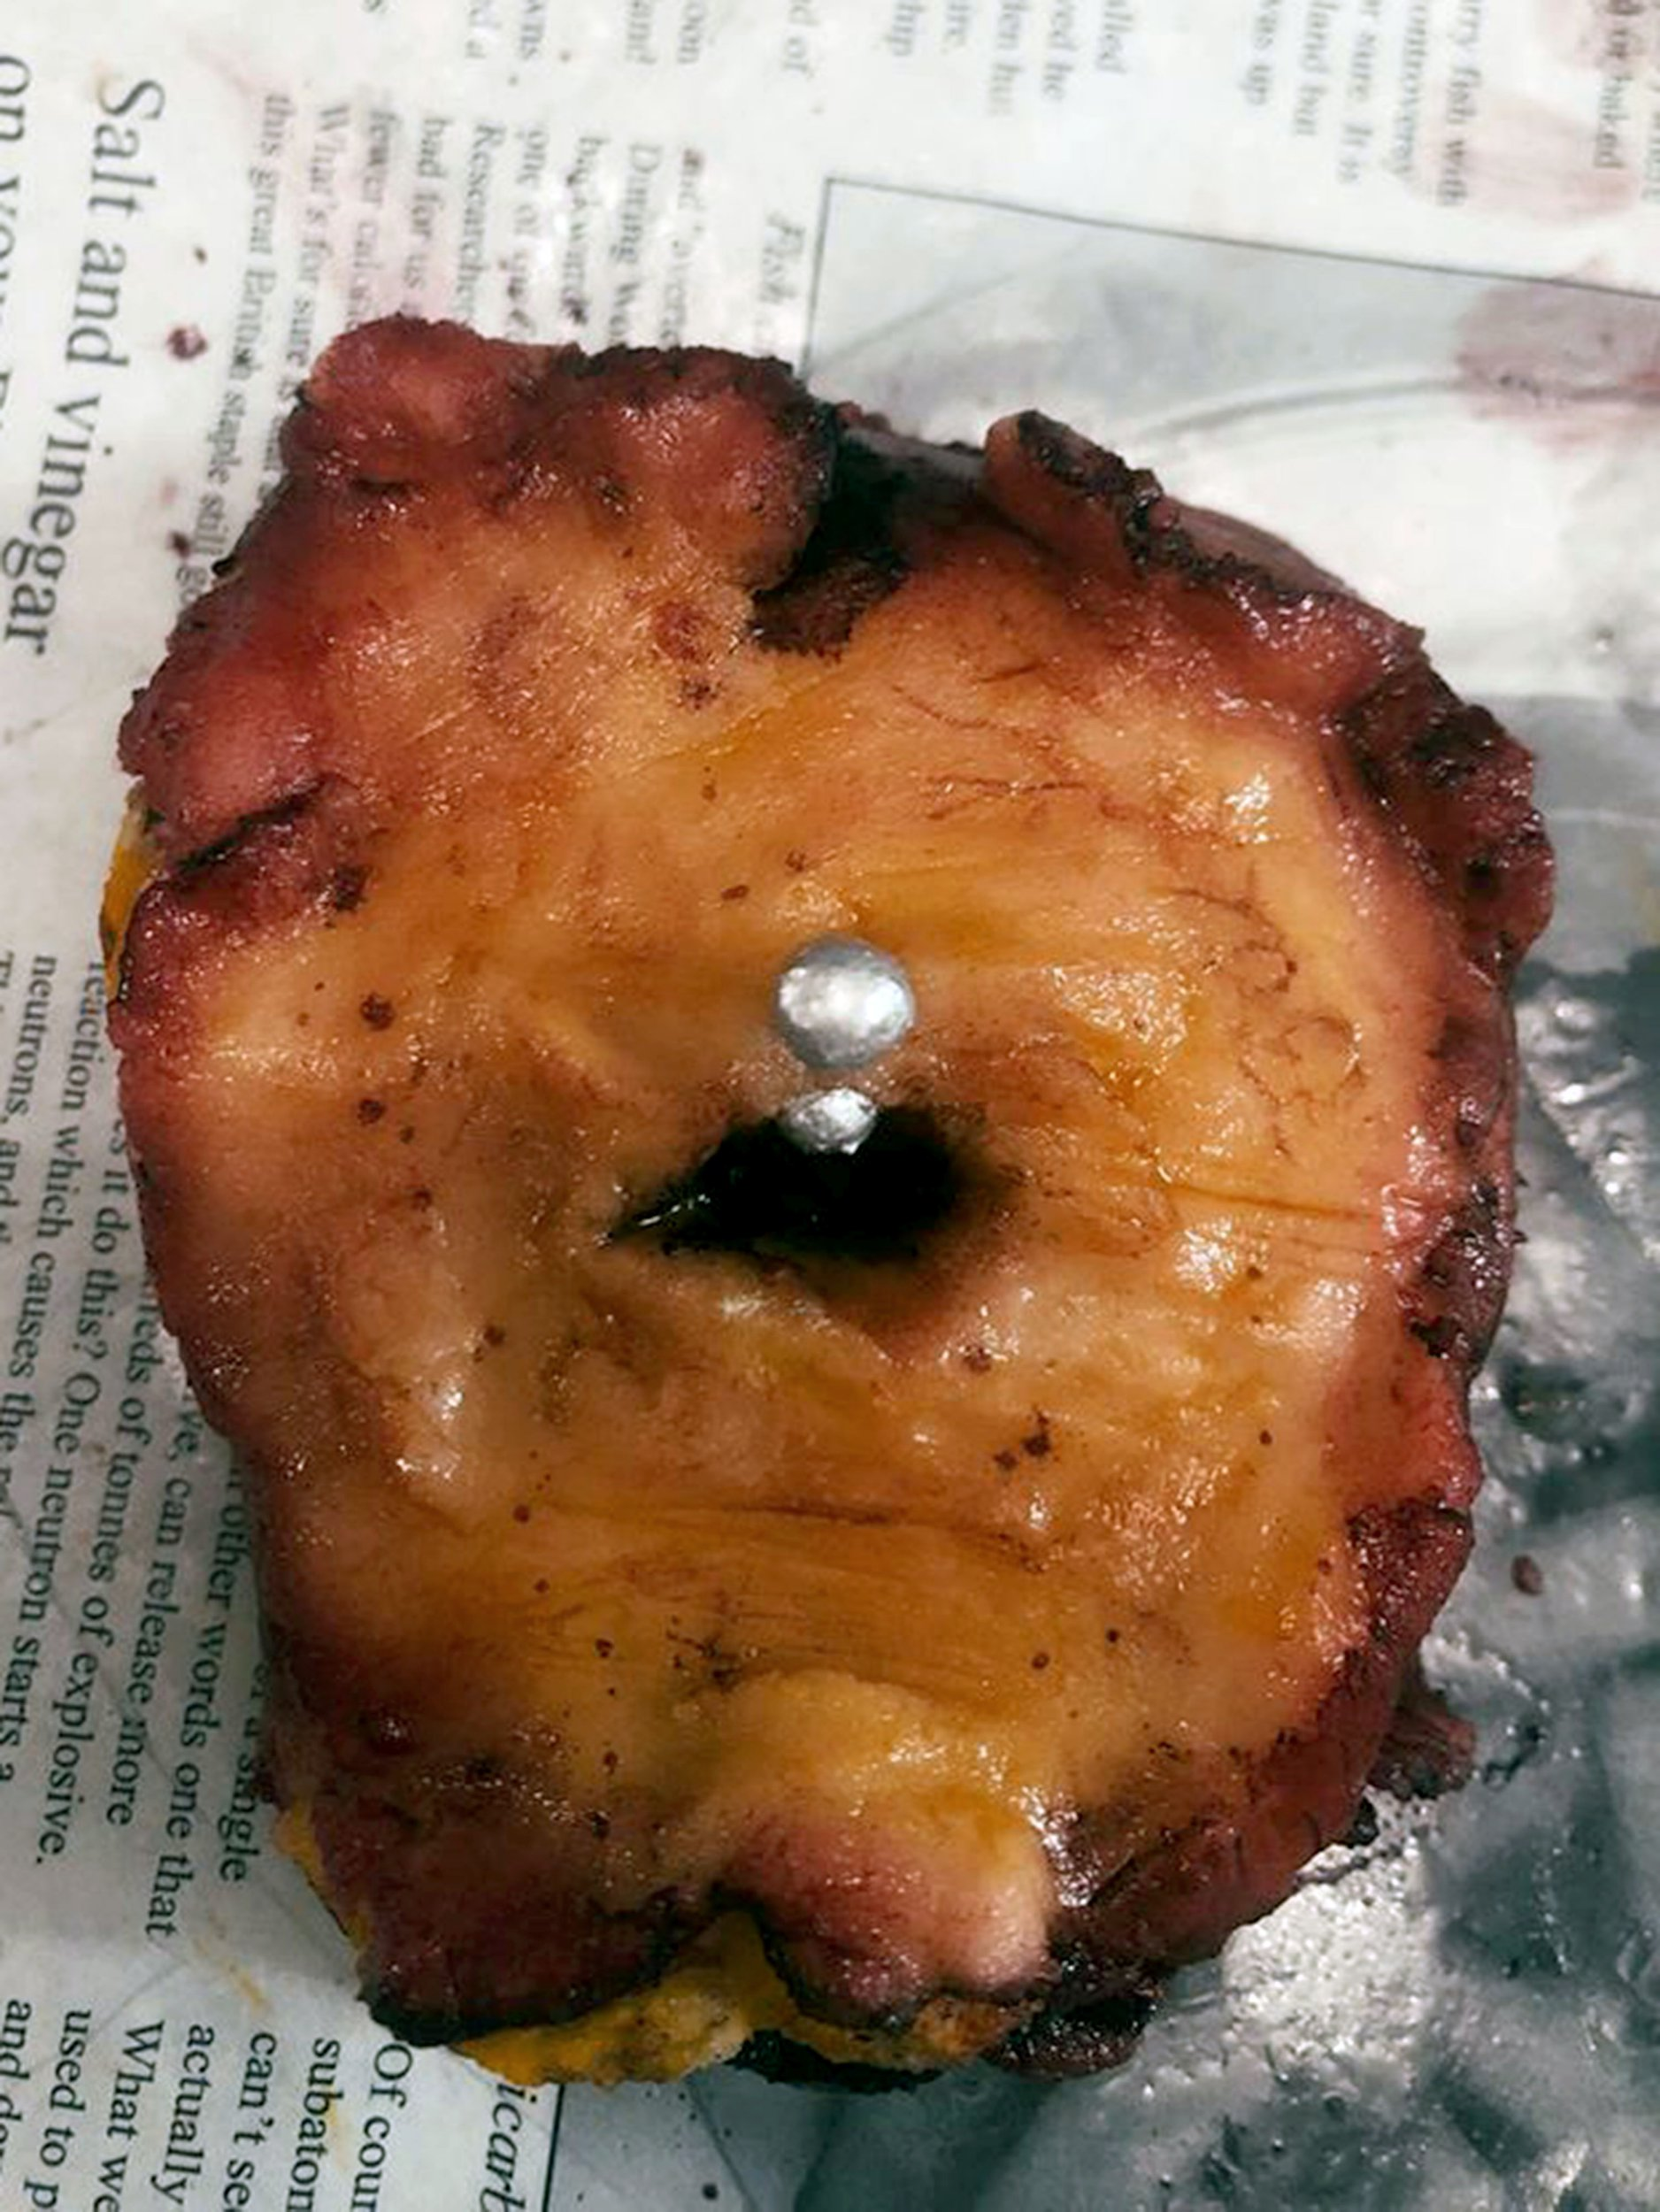 PIC FROM Caters News- (PICTURED: Tanya Nisa, 42, from Lincoln creates gory cakes that resemble human flesh. Pictured is a belly button) - A young mum-of-four has been branded a CANNIBAL online for creating cakes that resemble human flesh. From severed fingers, feet and arms, Tanya Nisa, 42, has spent the past seven years perfecting her craft of gory cakes after becoming inspired by the film, Hannibal.Yet the realistic cakes seeping fake blood and profiling severed limbs and lifelike faces have scared more than a few online as Tanya, an interior designer, has been forced to explain that her creations are actually freshly Victoria sponge cakes.SEE CATERS COPY